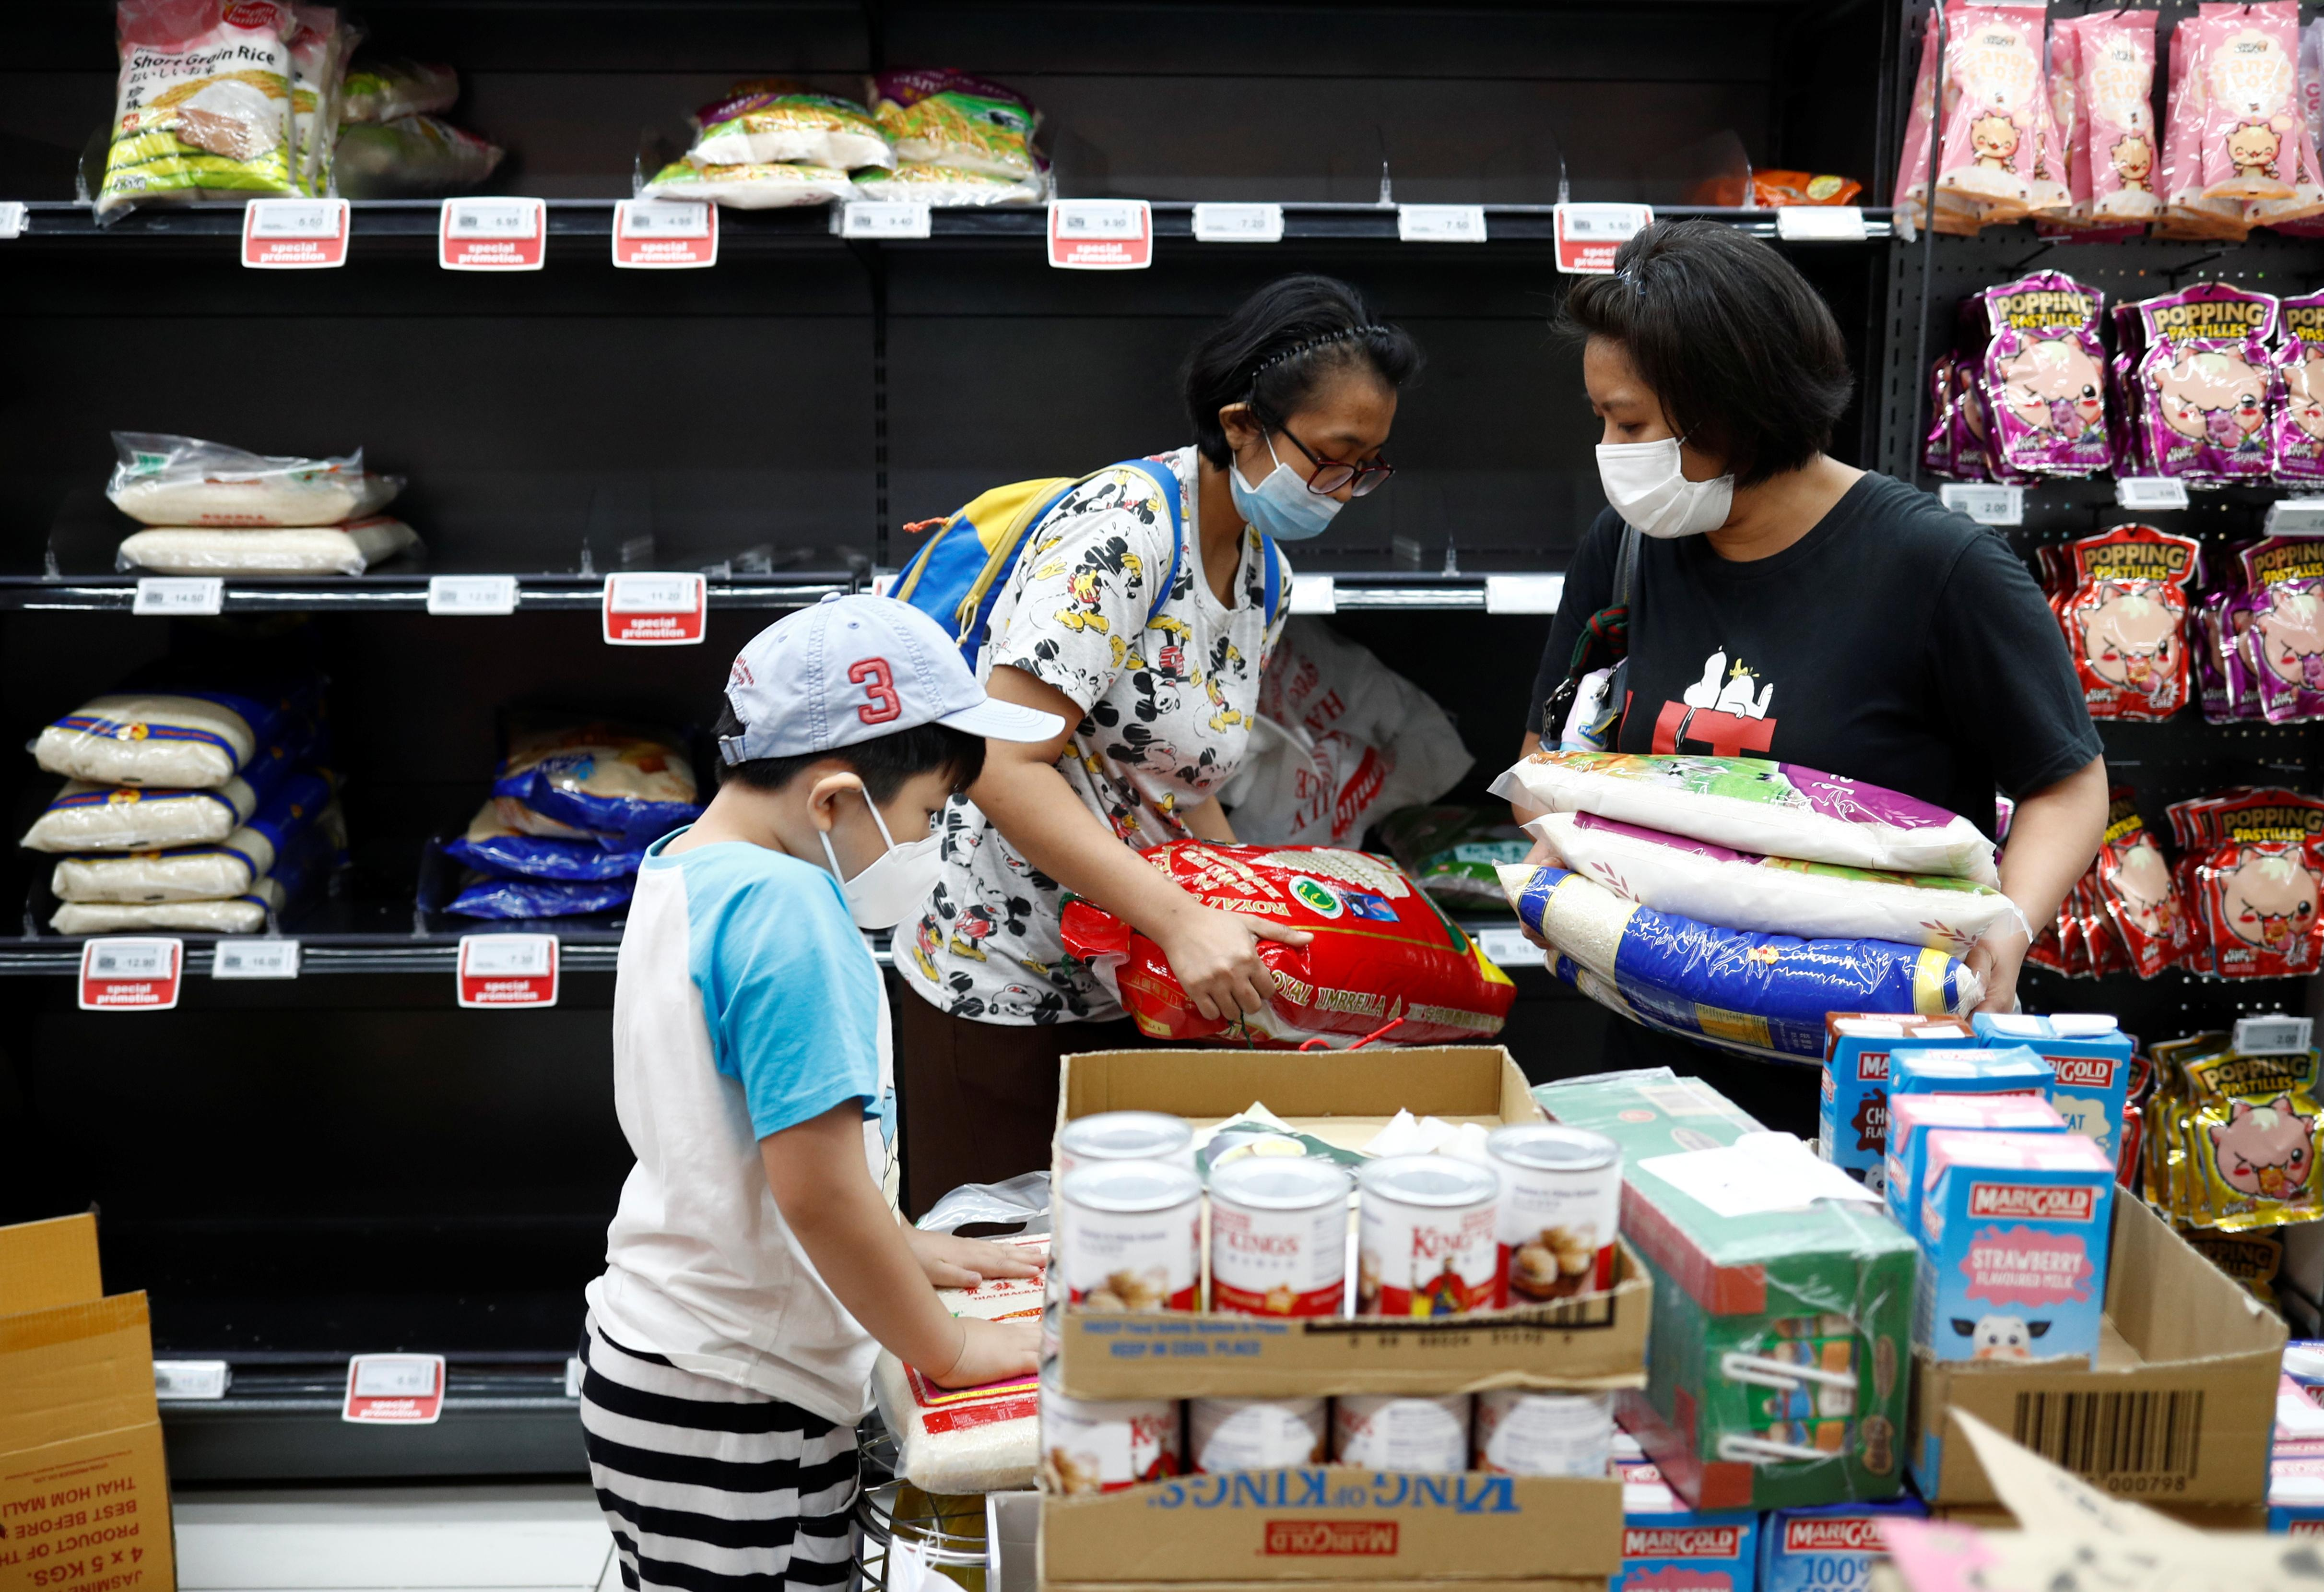 Budget 2020: Tax rebates, wage support and cost of living package among measures amid COVID-19 outbreak — Heng Swee Keat